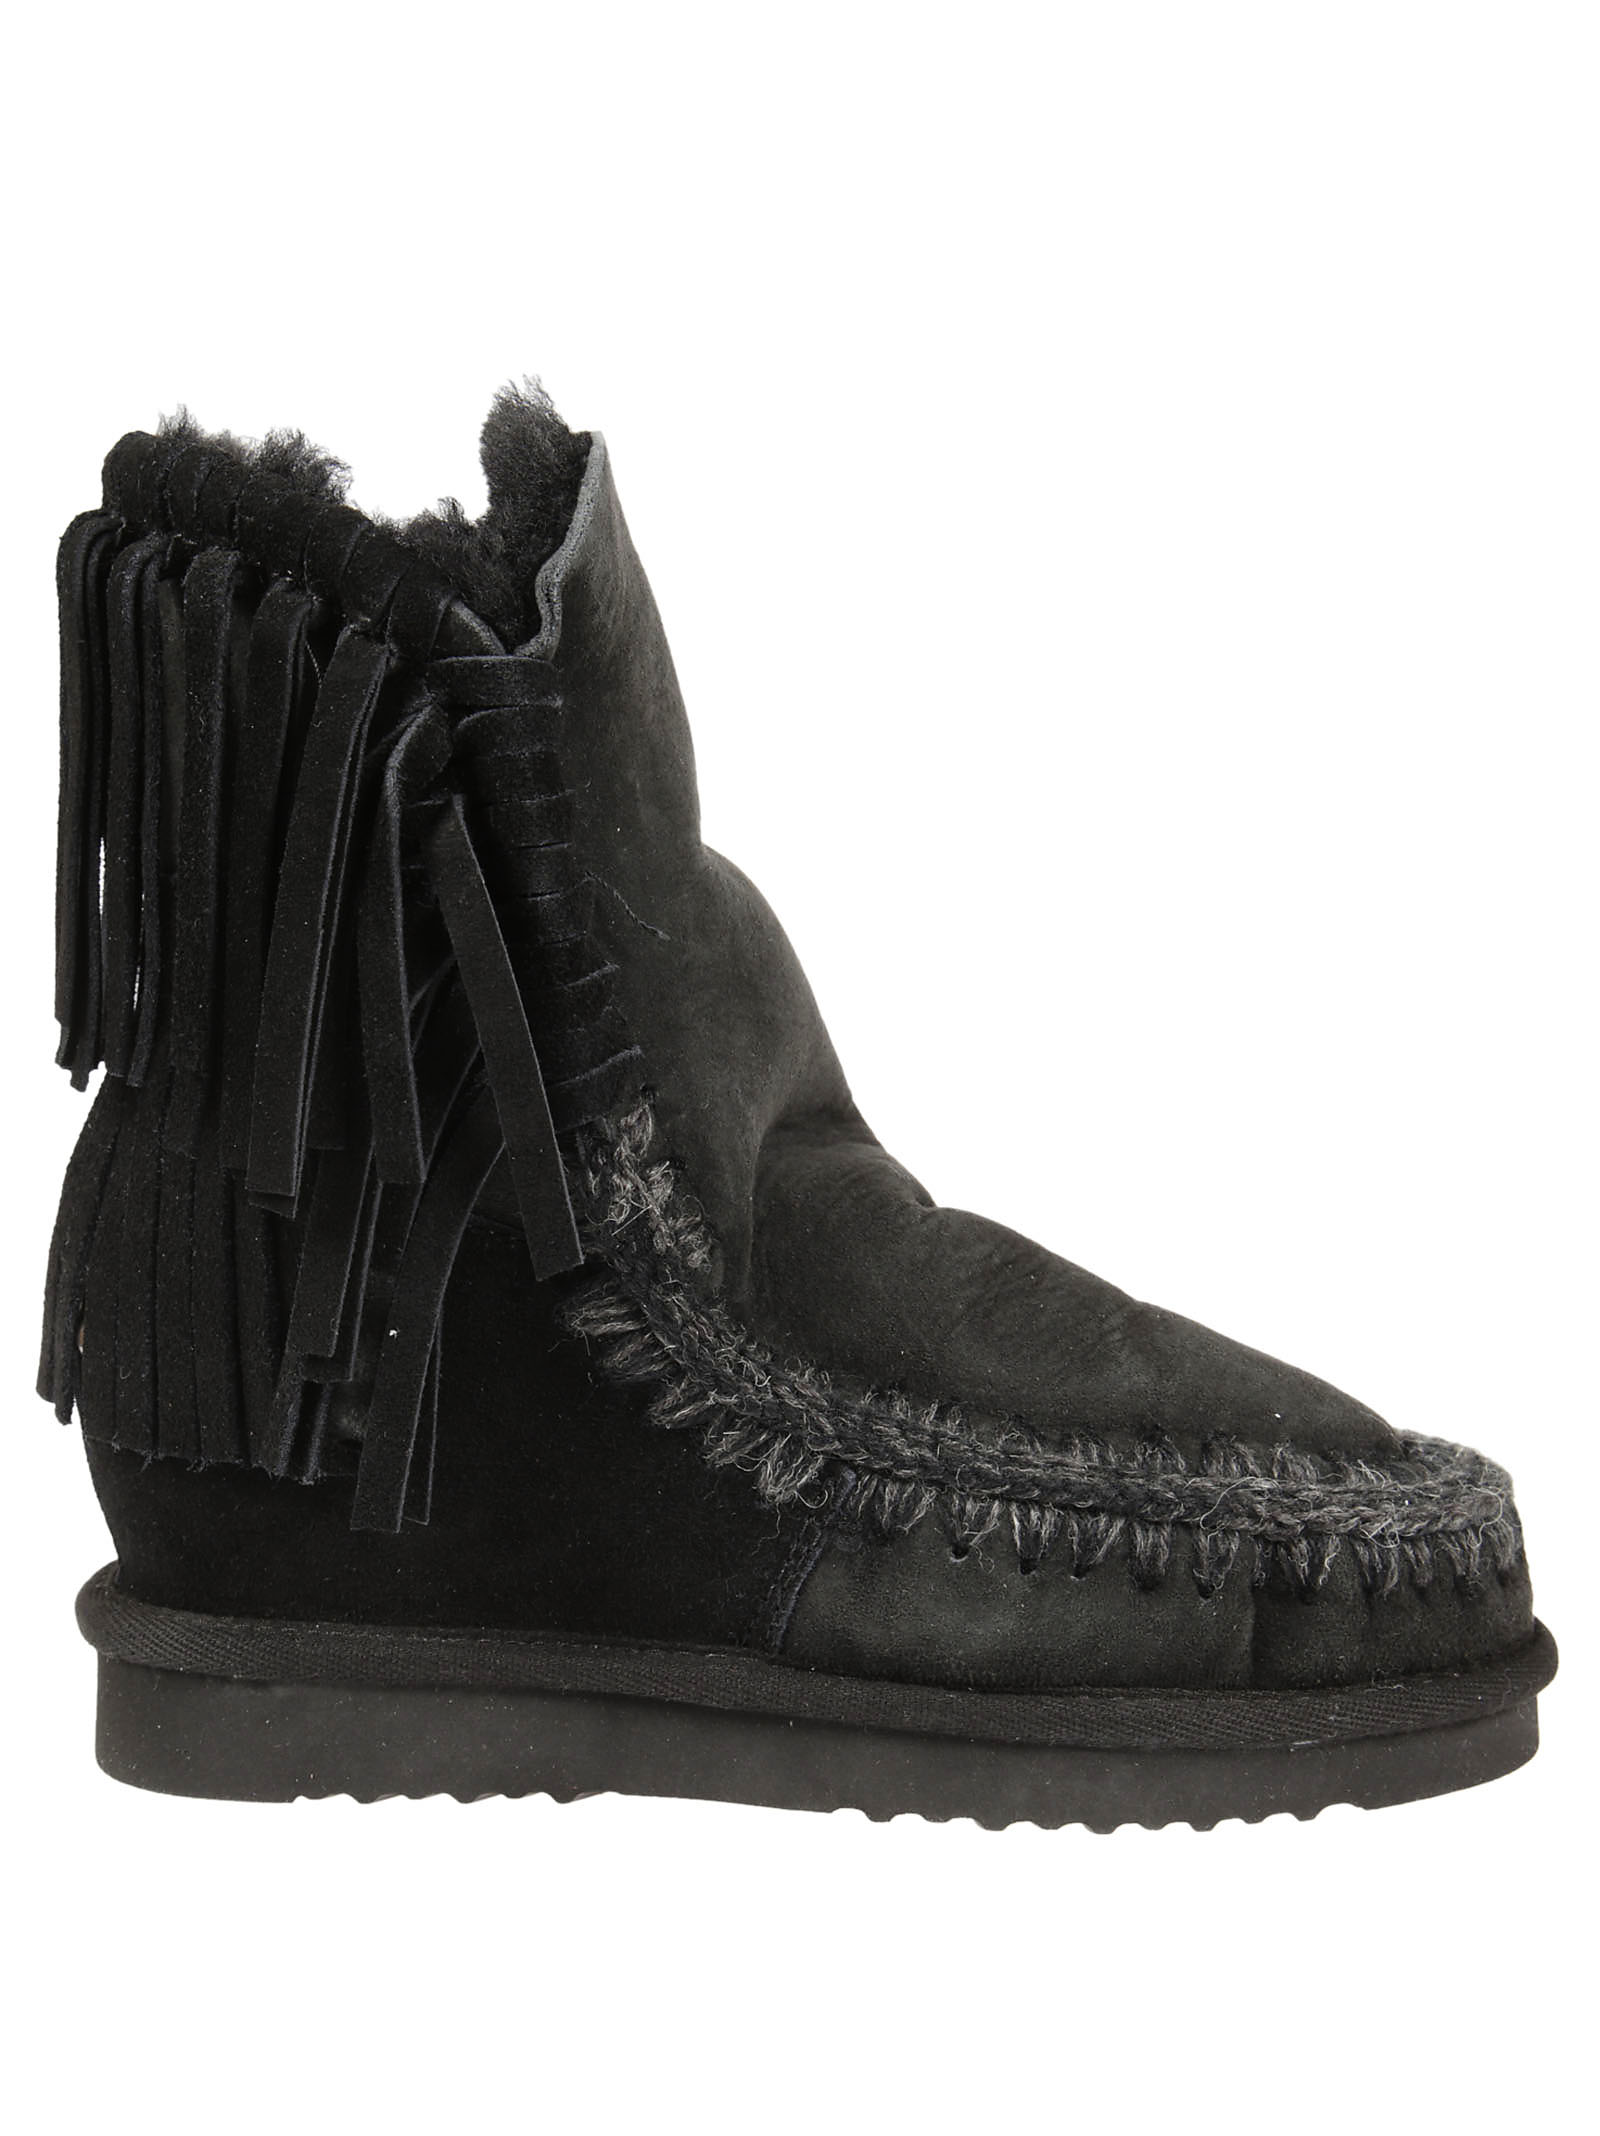 Mou Mou Fringed Ankle Boots